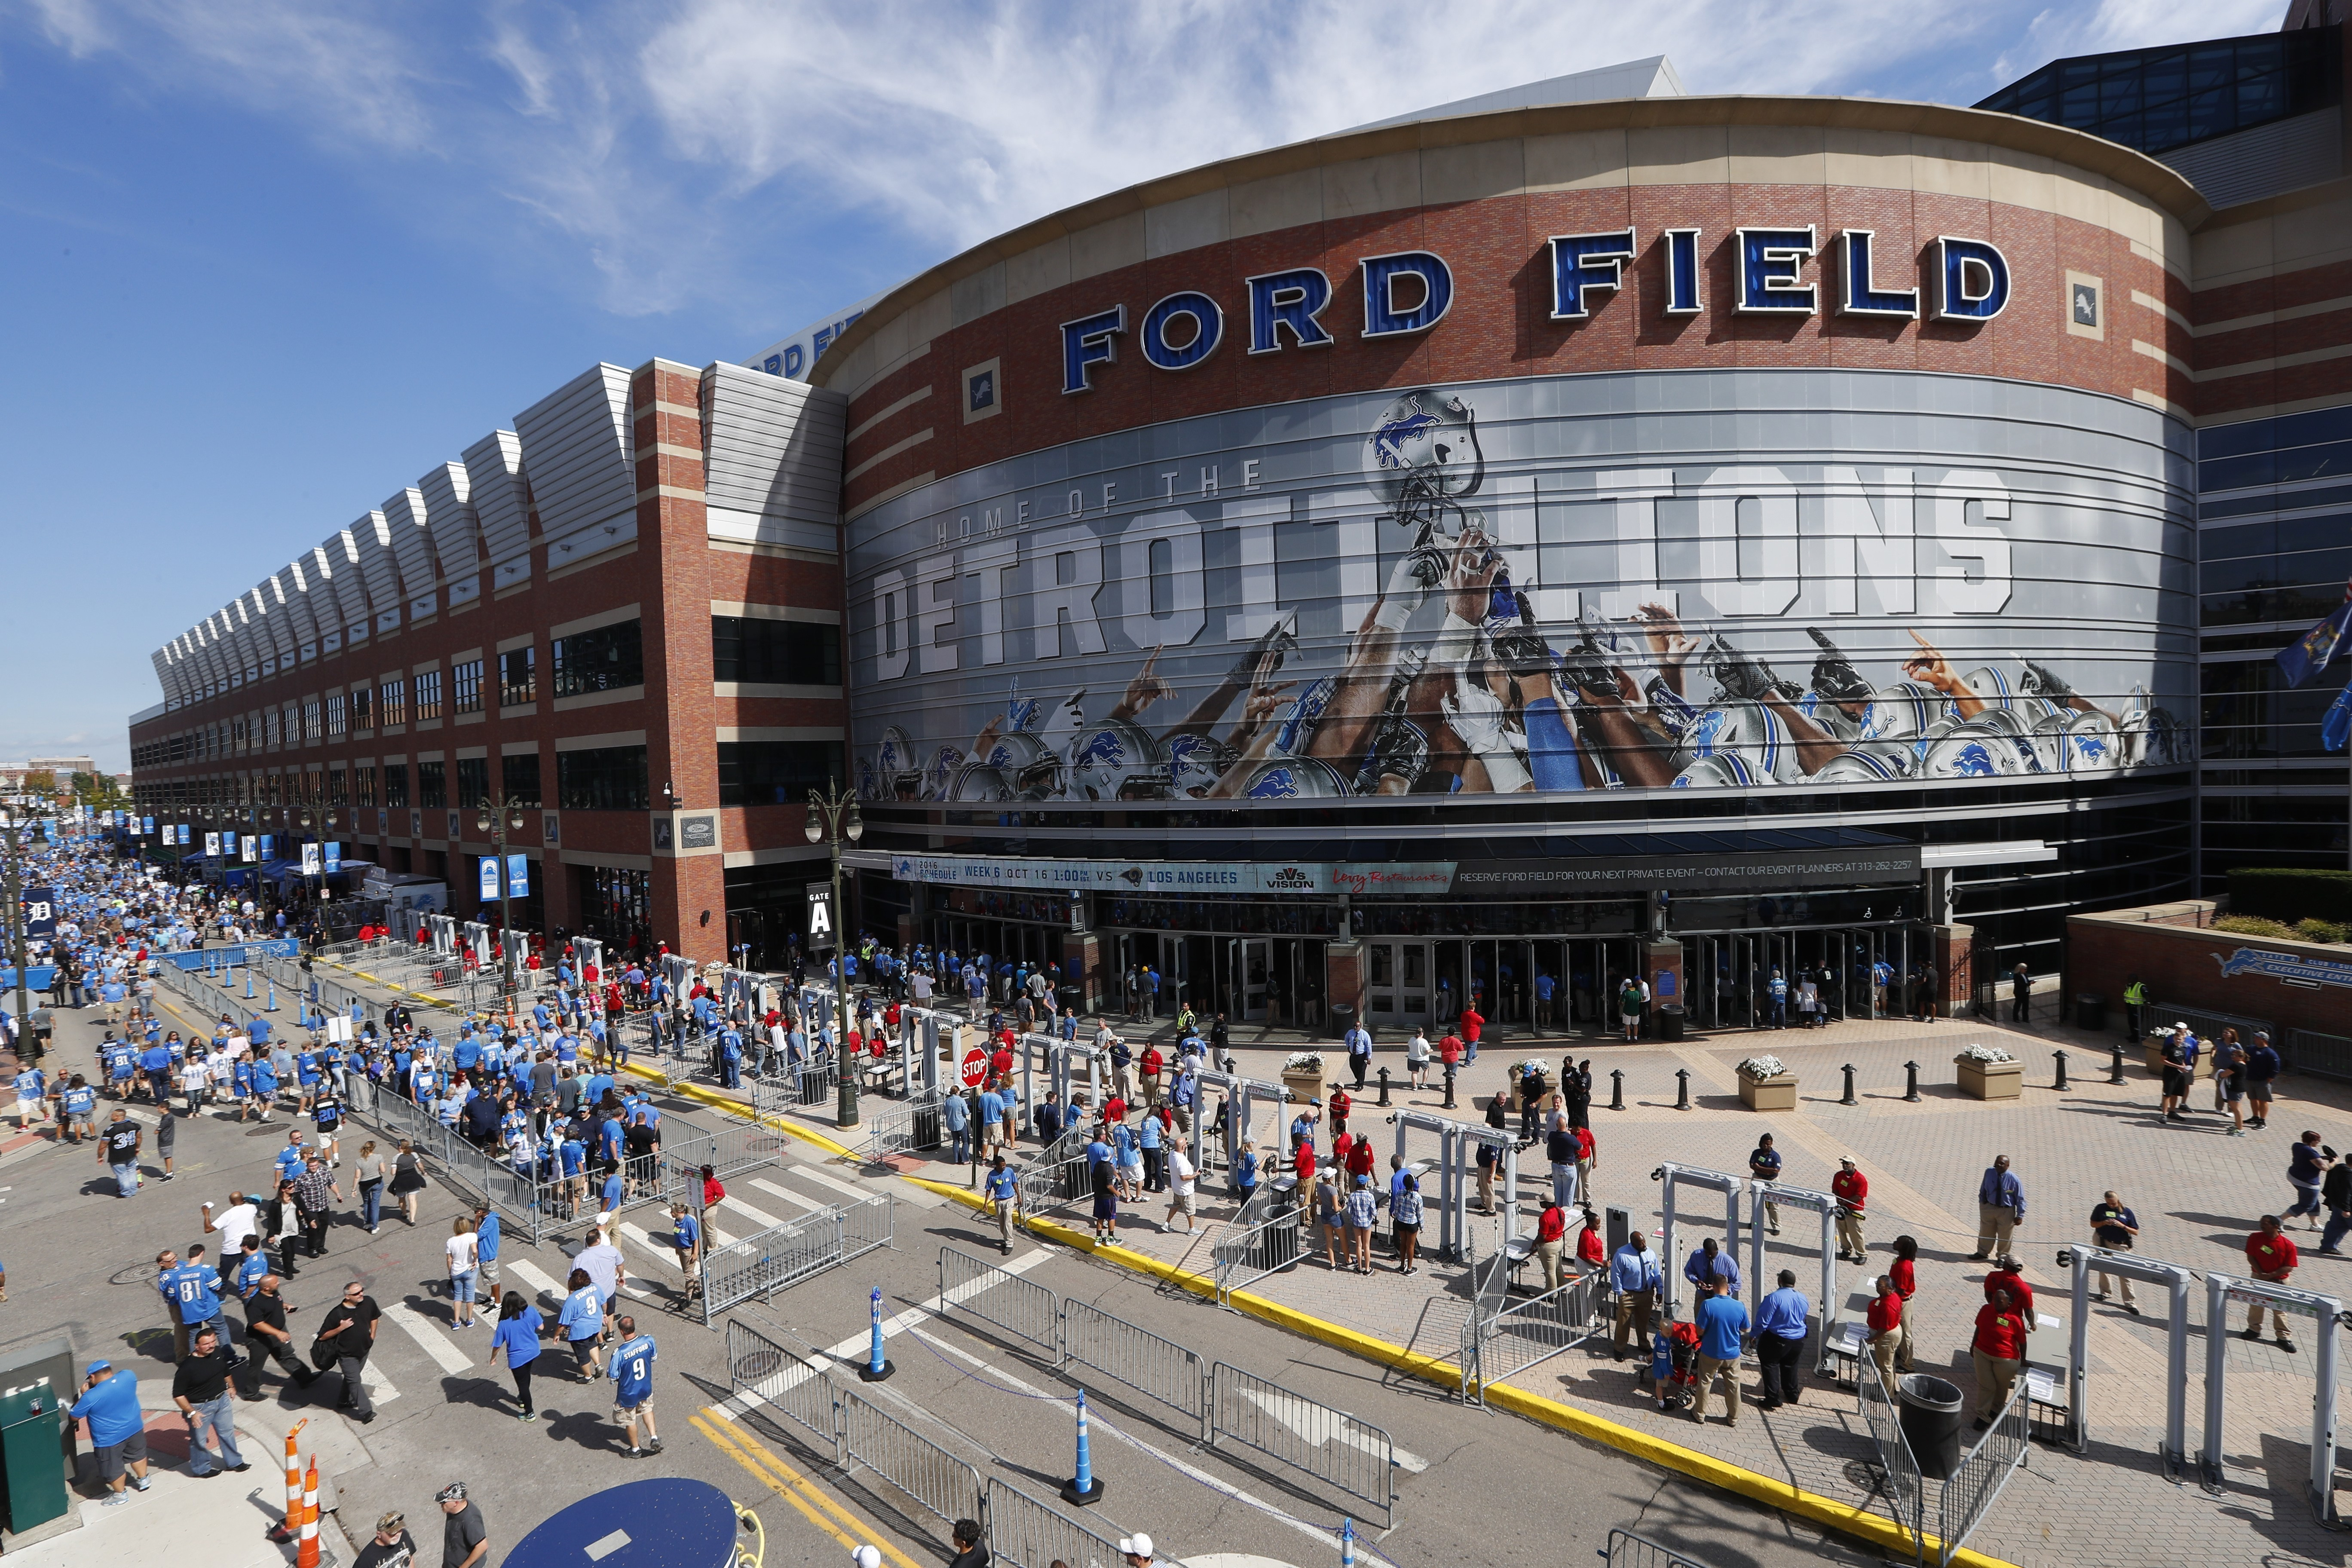 Football fans arrive at Ford Field for an NFL football game between the Detroit Lions and the Tennessee Titans, Sunday, Sept. 18, 2016, in Detroit. (AP Photo/Paul Sancya)